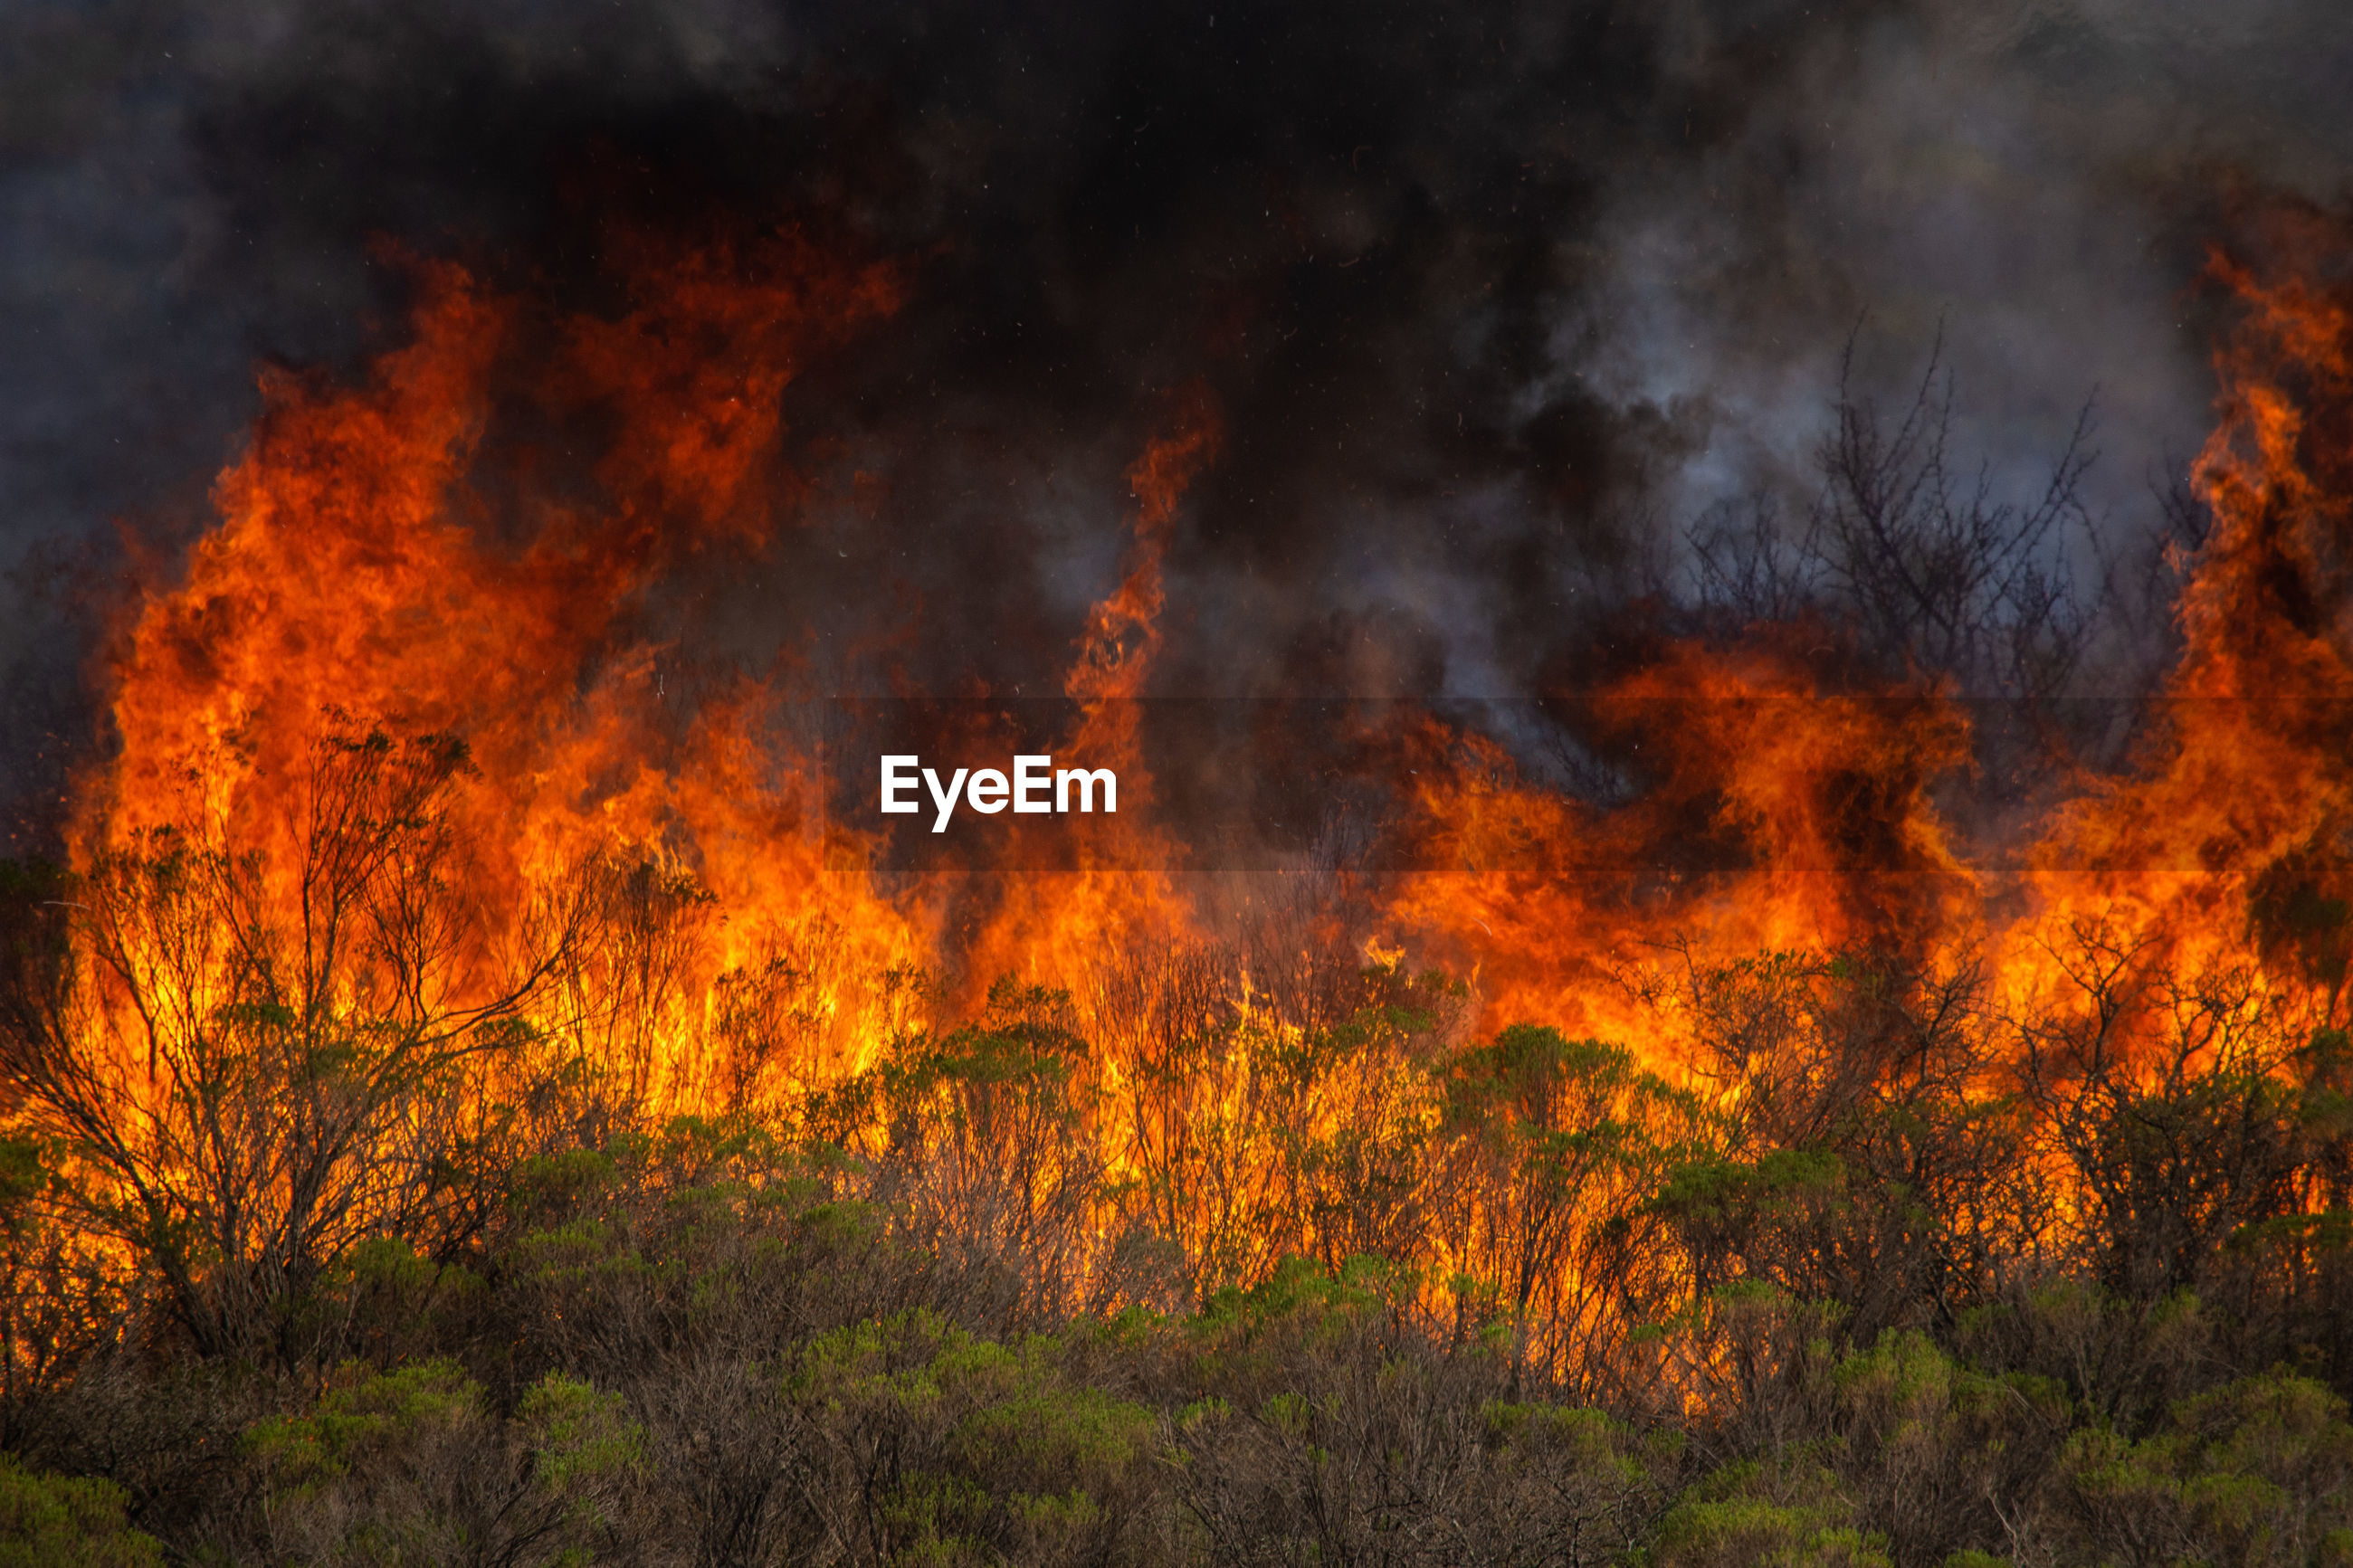 LOW ANGLE VIEW OF FIRE ON FOREST